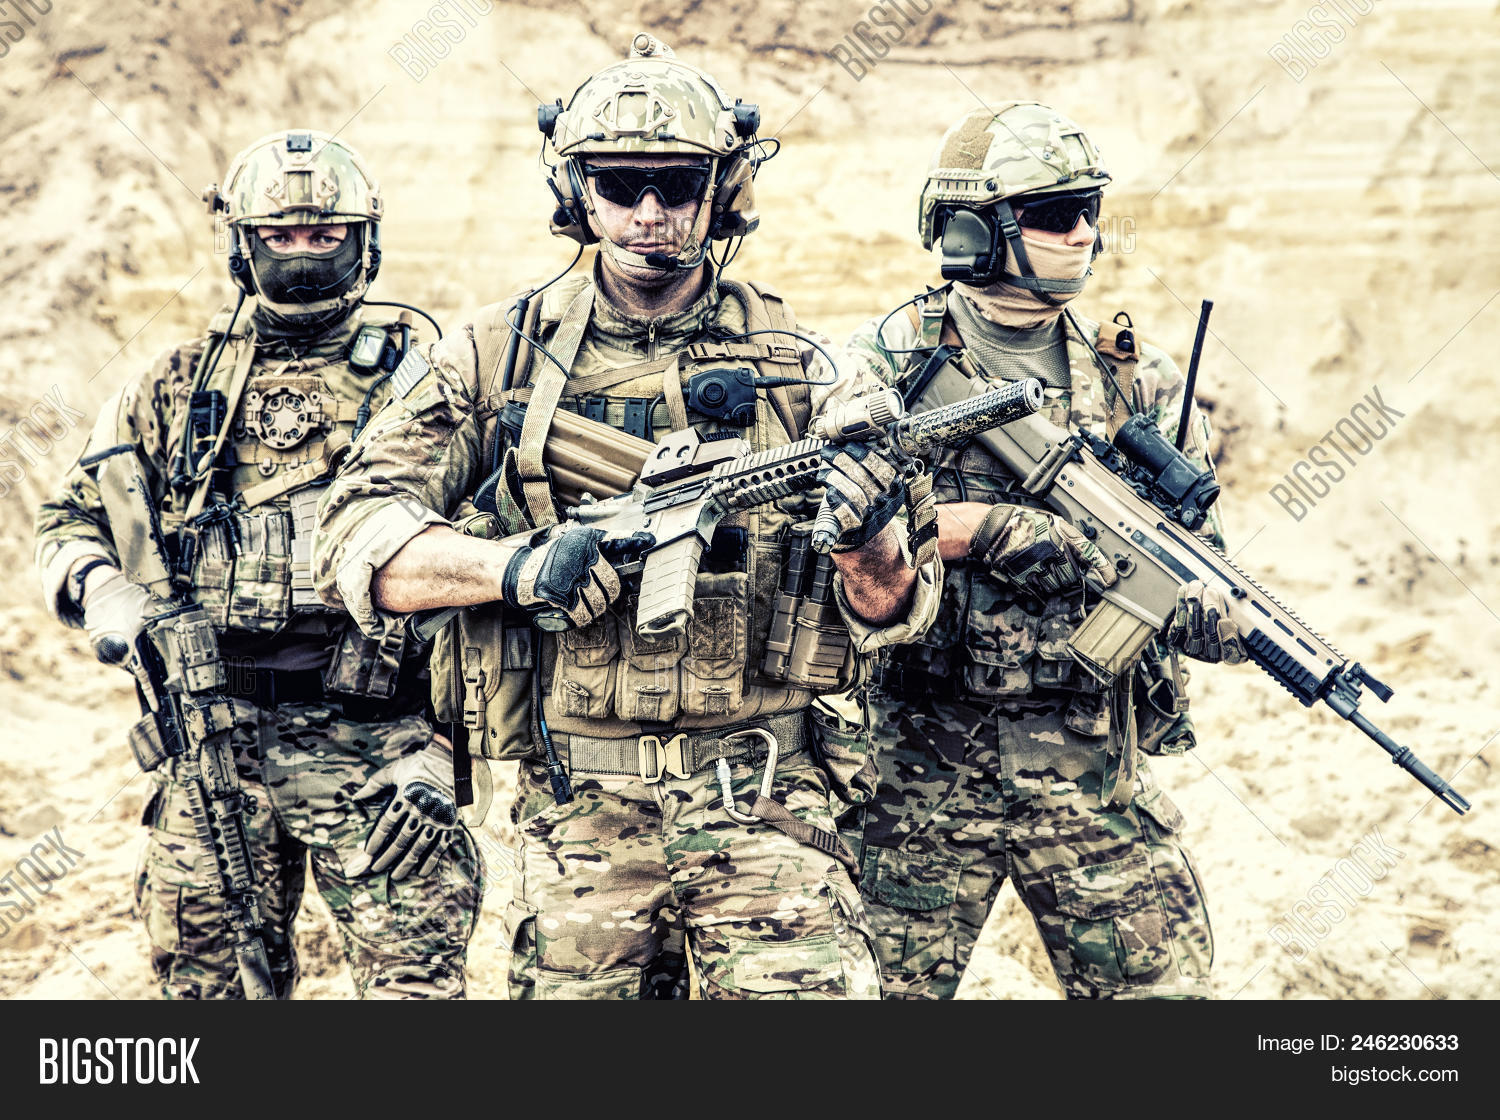 american,ammunition,armed,armor,arms,army,assault,brutal,camouflage,carbine,combat,combatant,commando,conflict,desert,elite,fighter,firearms,forces,group,gun,headset,helmet,hero,infantry,infantryman,mercenary,military,operations,portrait,ranger,rifle,sand,service,serviceman,soldier,special,states,tactical,team,three,troops,uniforms,united,us,veteran,war,warfare,weapon